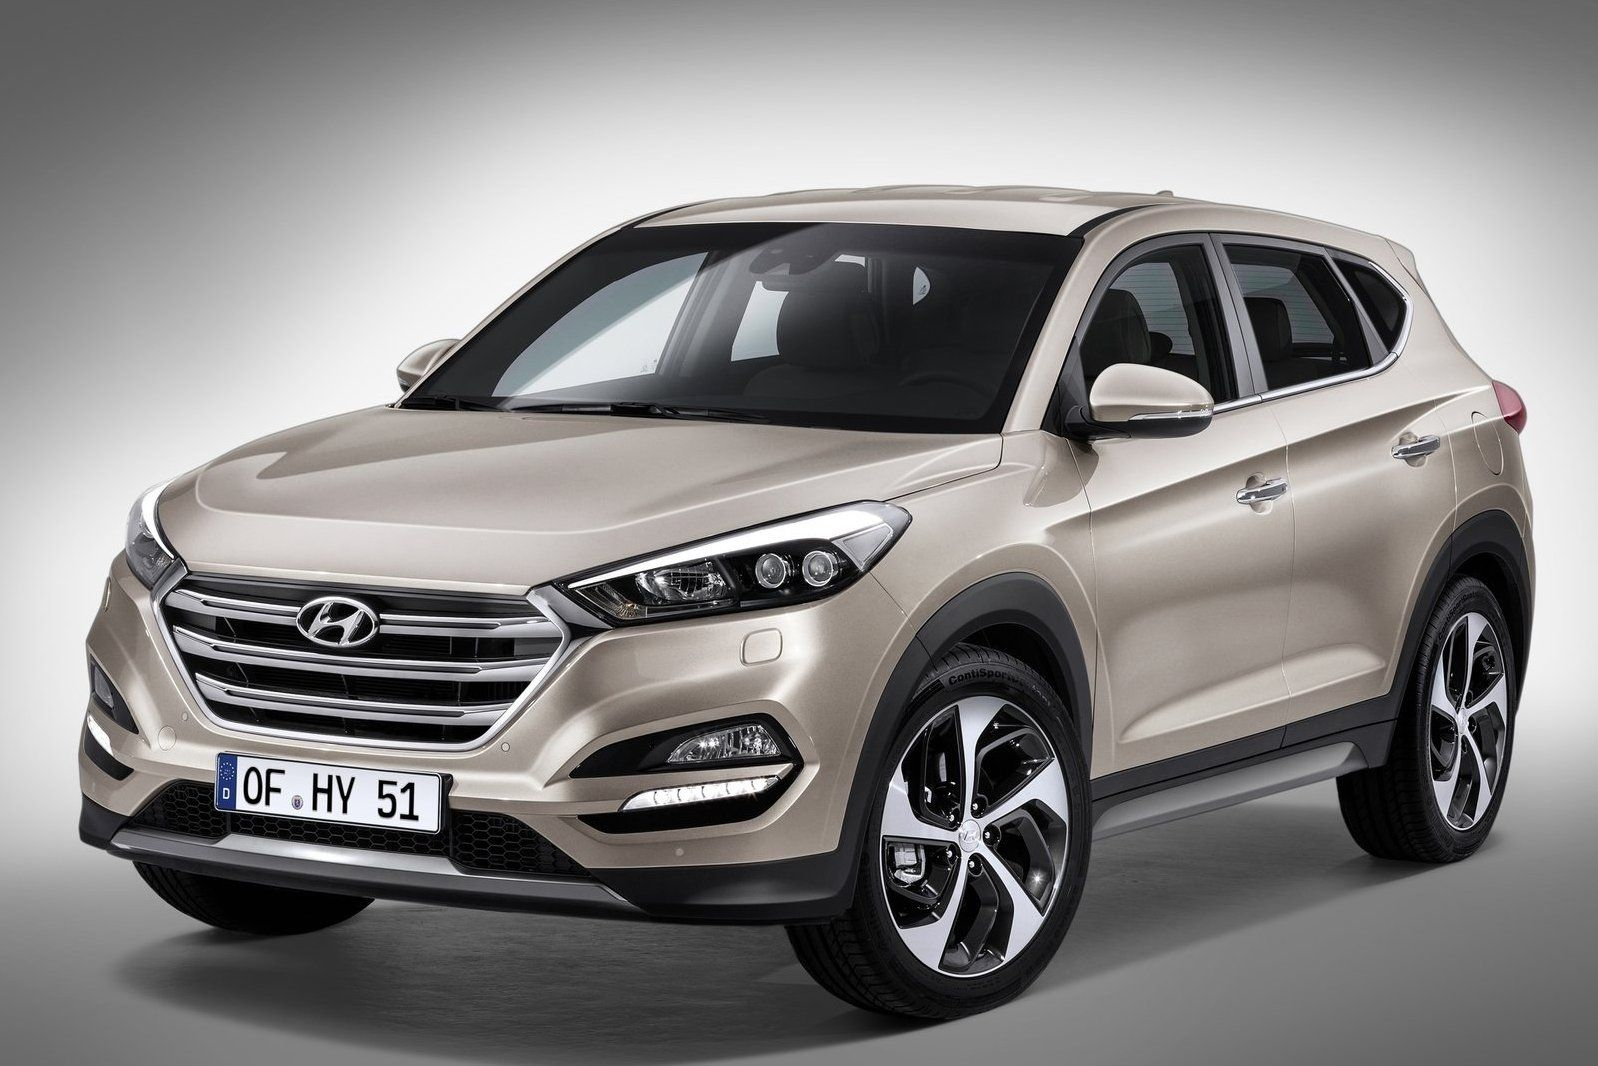 Hyundai Coming Soon In Pakistan Top End Models Will Be Launch In The Mid Of 2018 Best Compact Suv Best Midsize Suv Luxury Suv